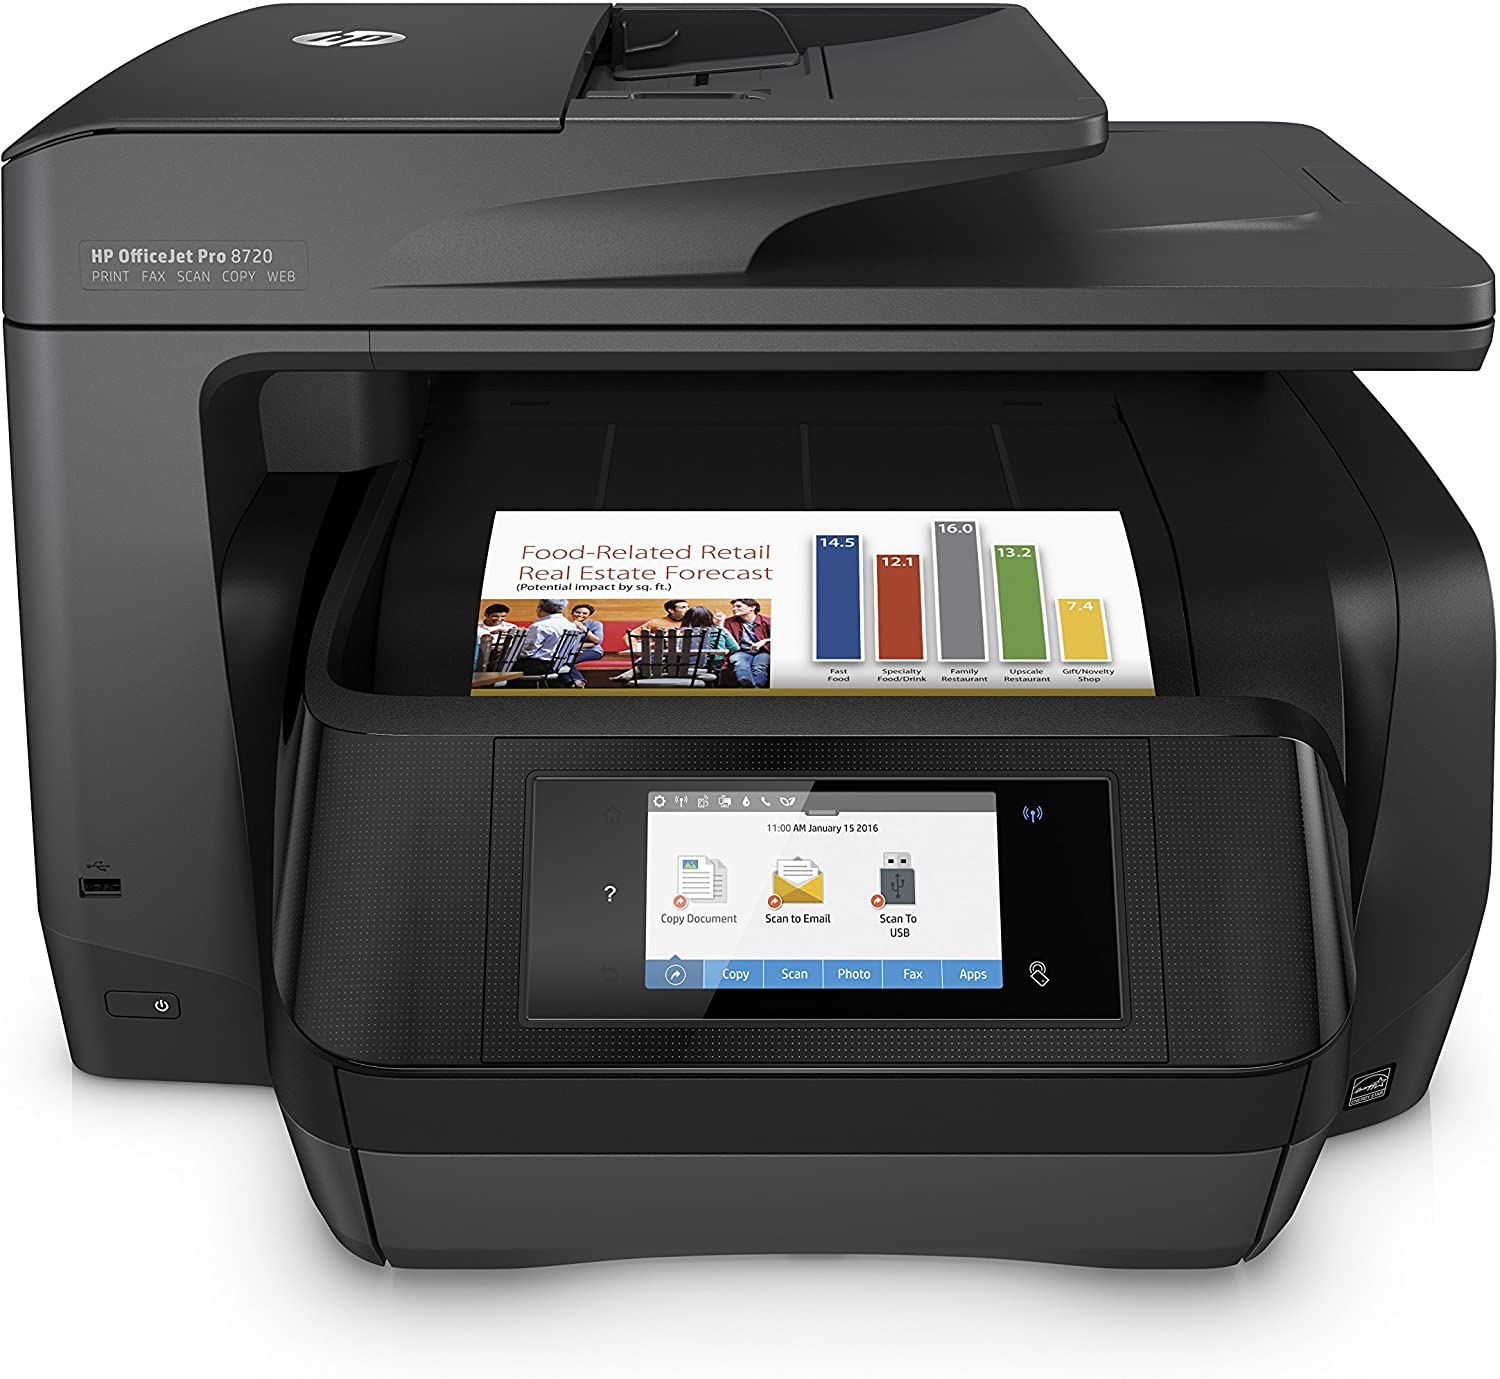 HP OfficeJet Pro 8720 All-in-One Wireless Printer, HP Instant Ink or Amazon Dash replenishment ready - Black (M9L74A)